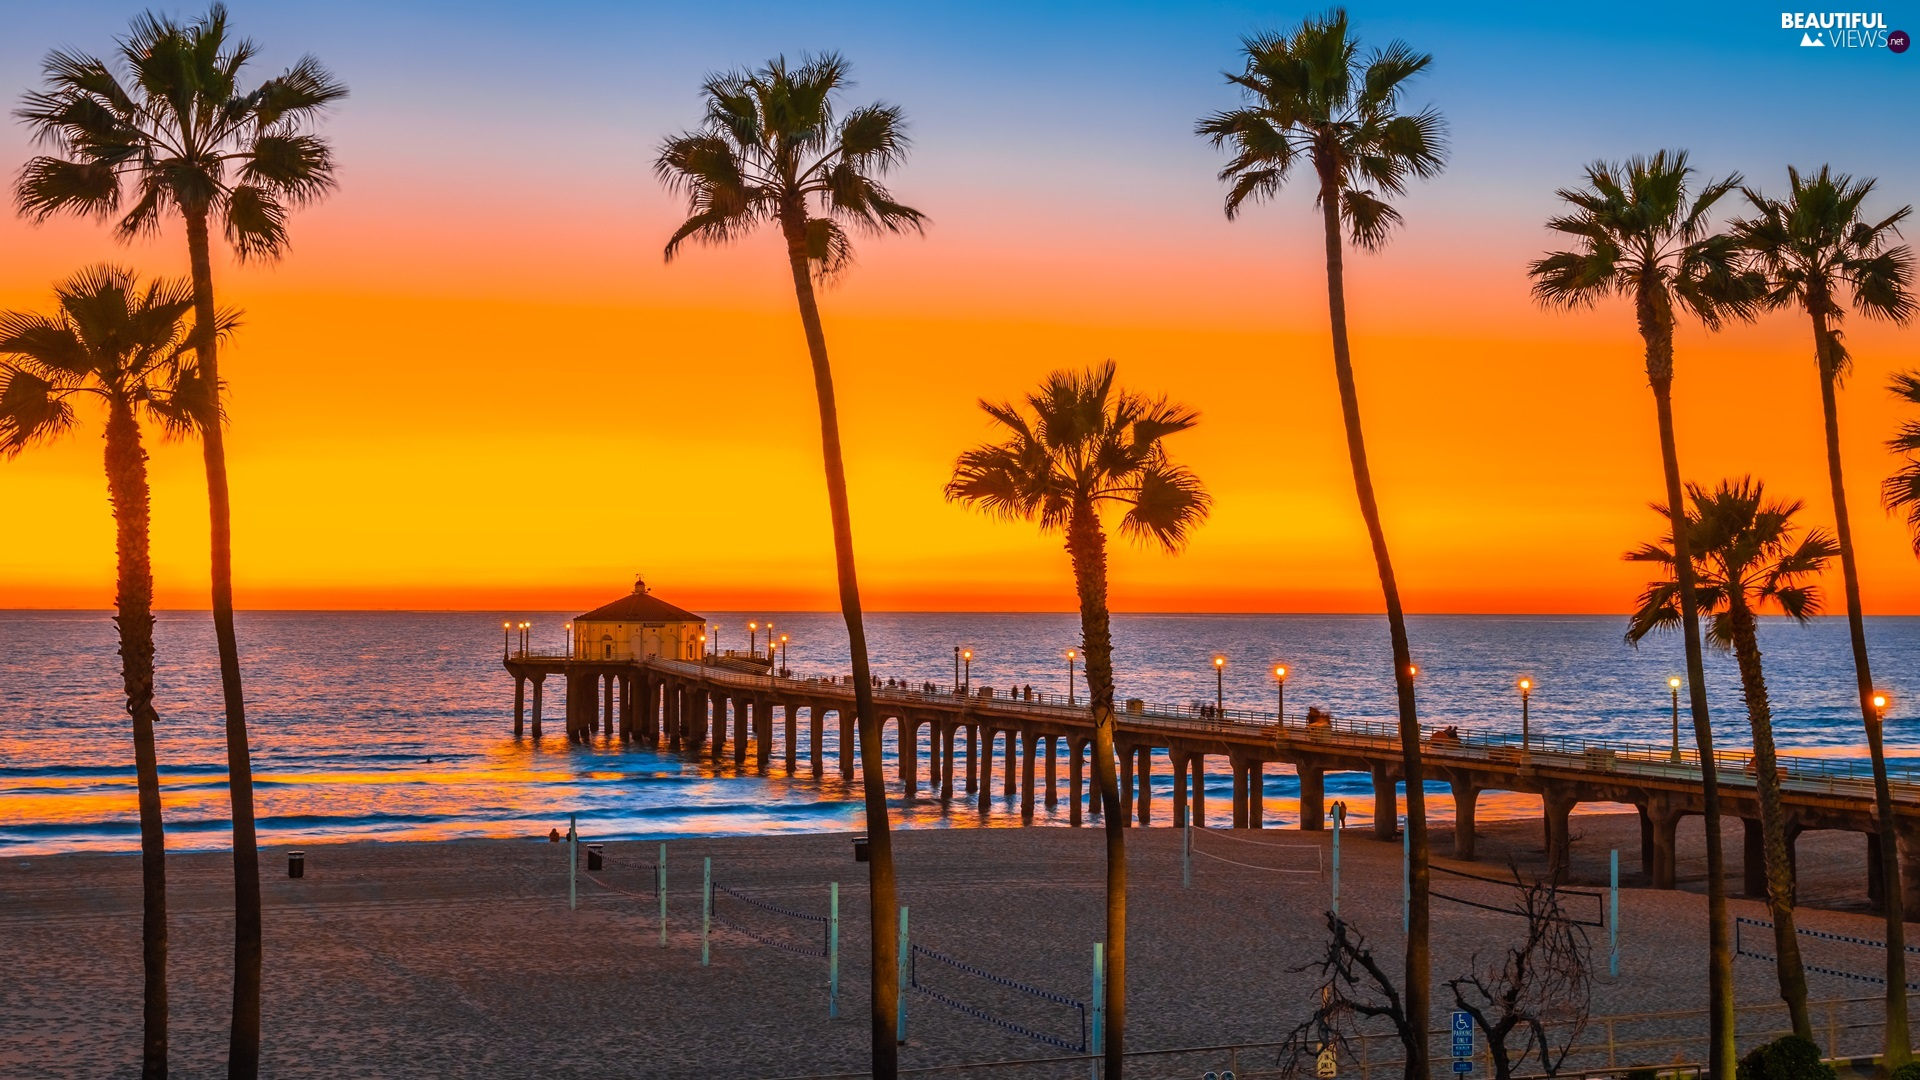 Palms, Great Sunsets, Beaches, pier, sea